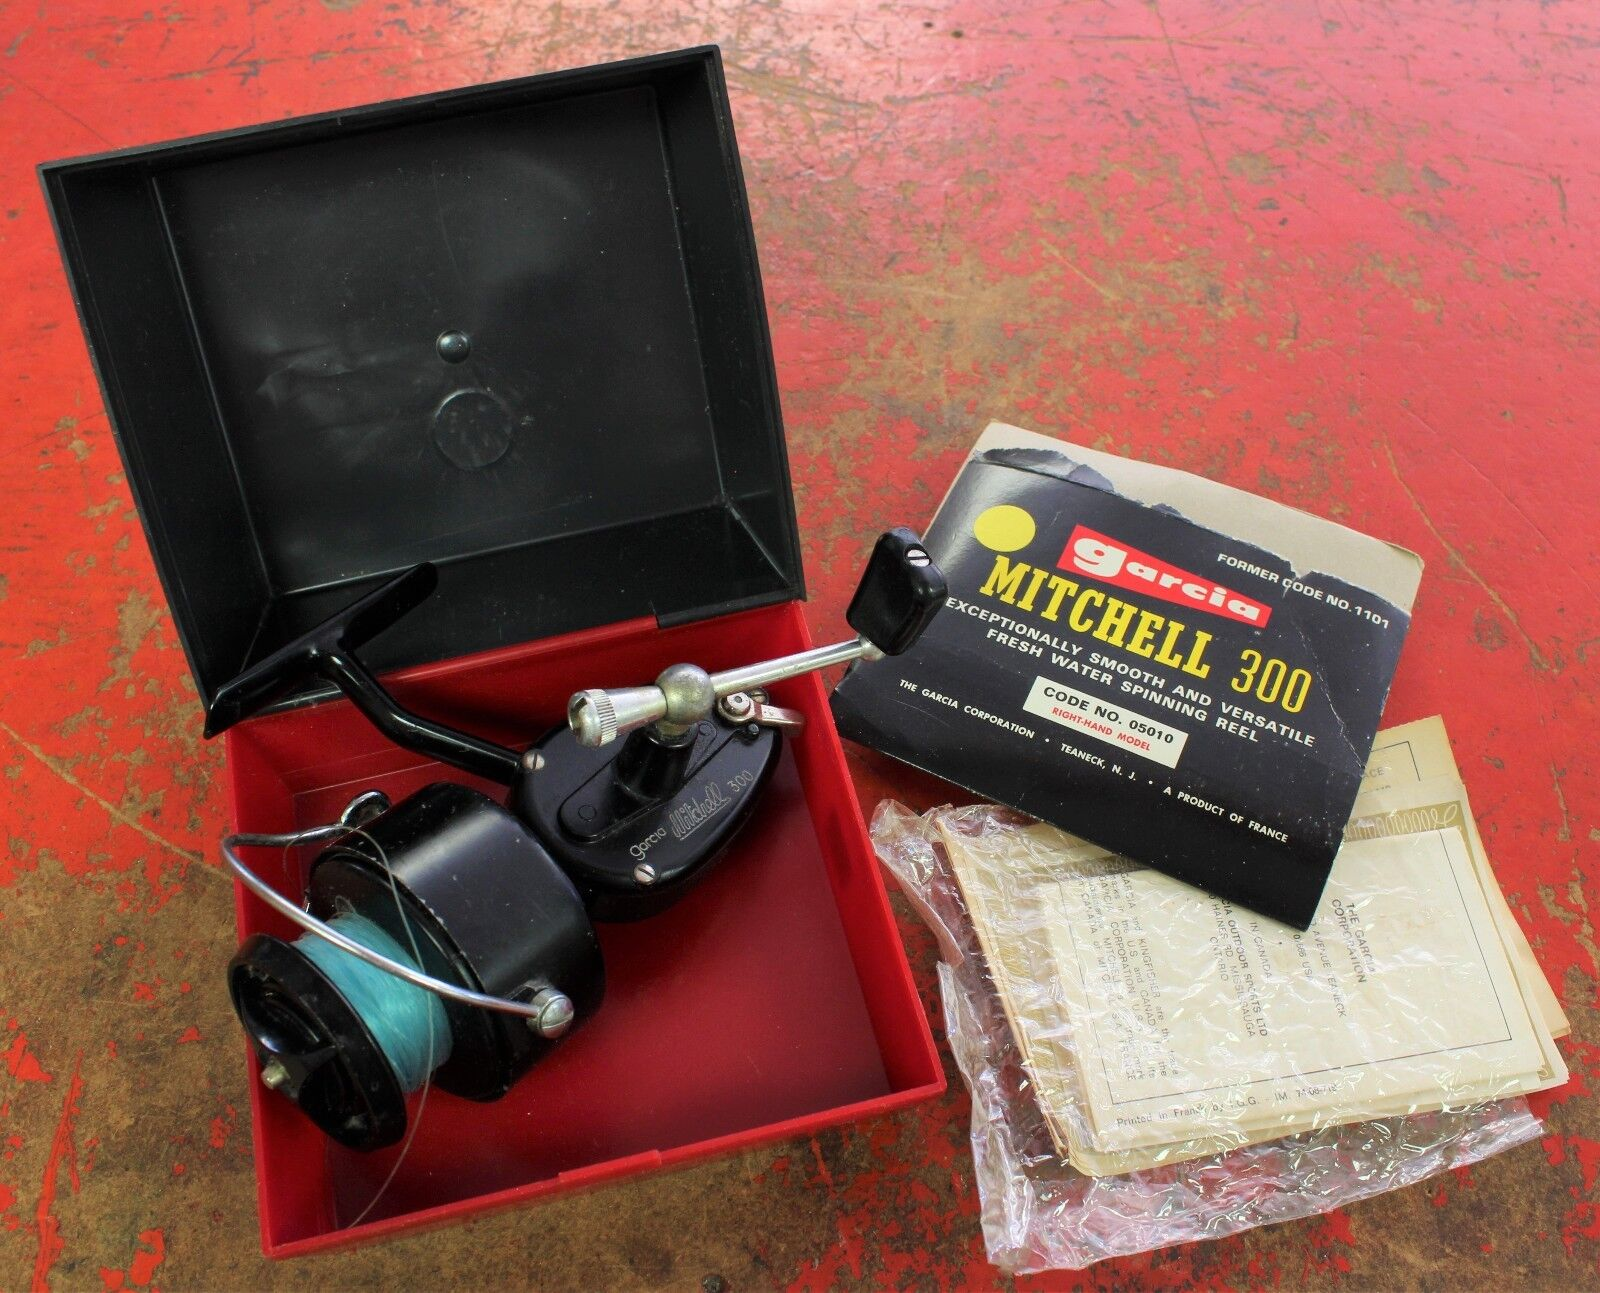 Garcia Mitchell  300 Spinning Reel - Original Clamshell Container  100% price guarantee